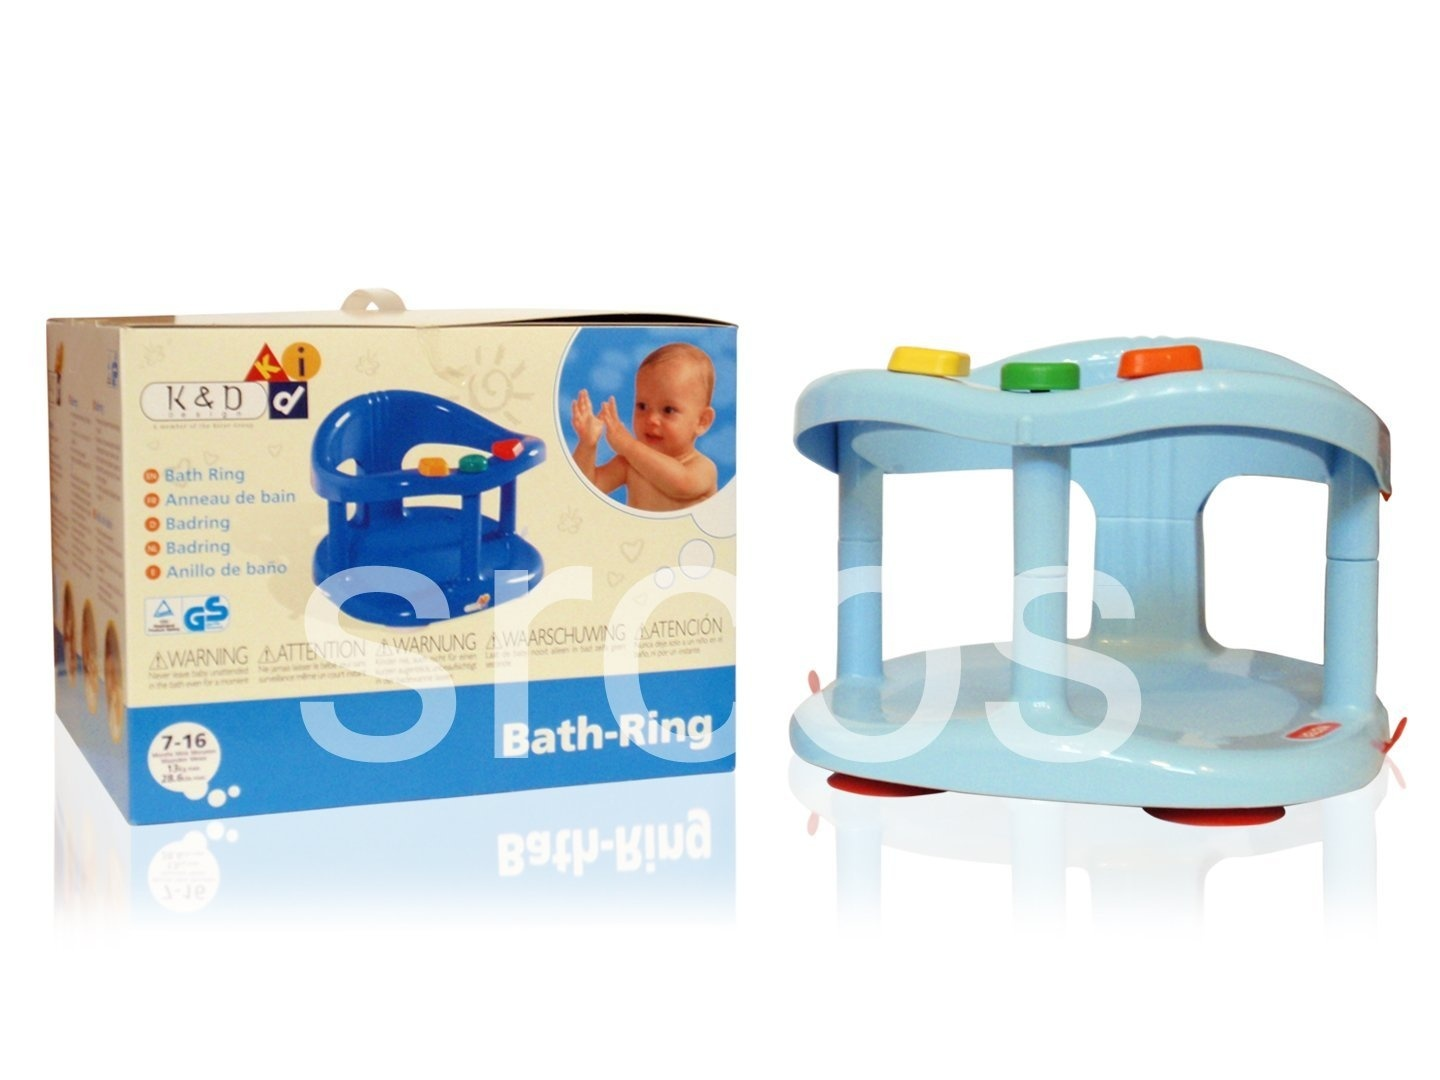 Bath Ring Seat Baby Baby: Buy Online from Fishpond.co.nz